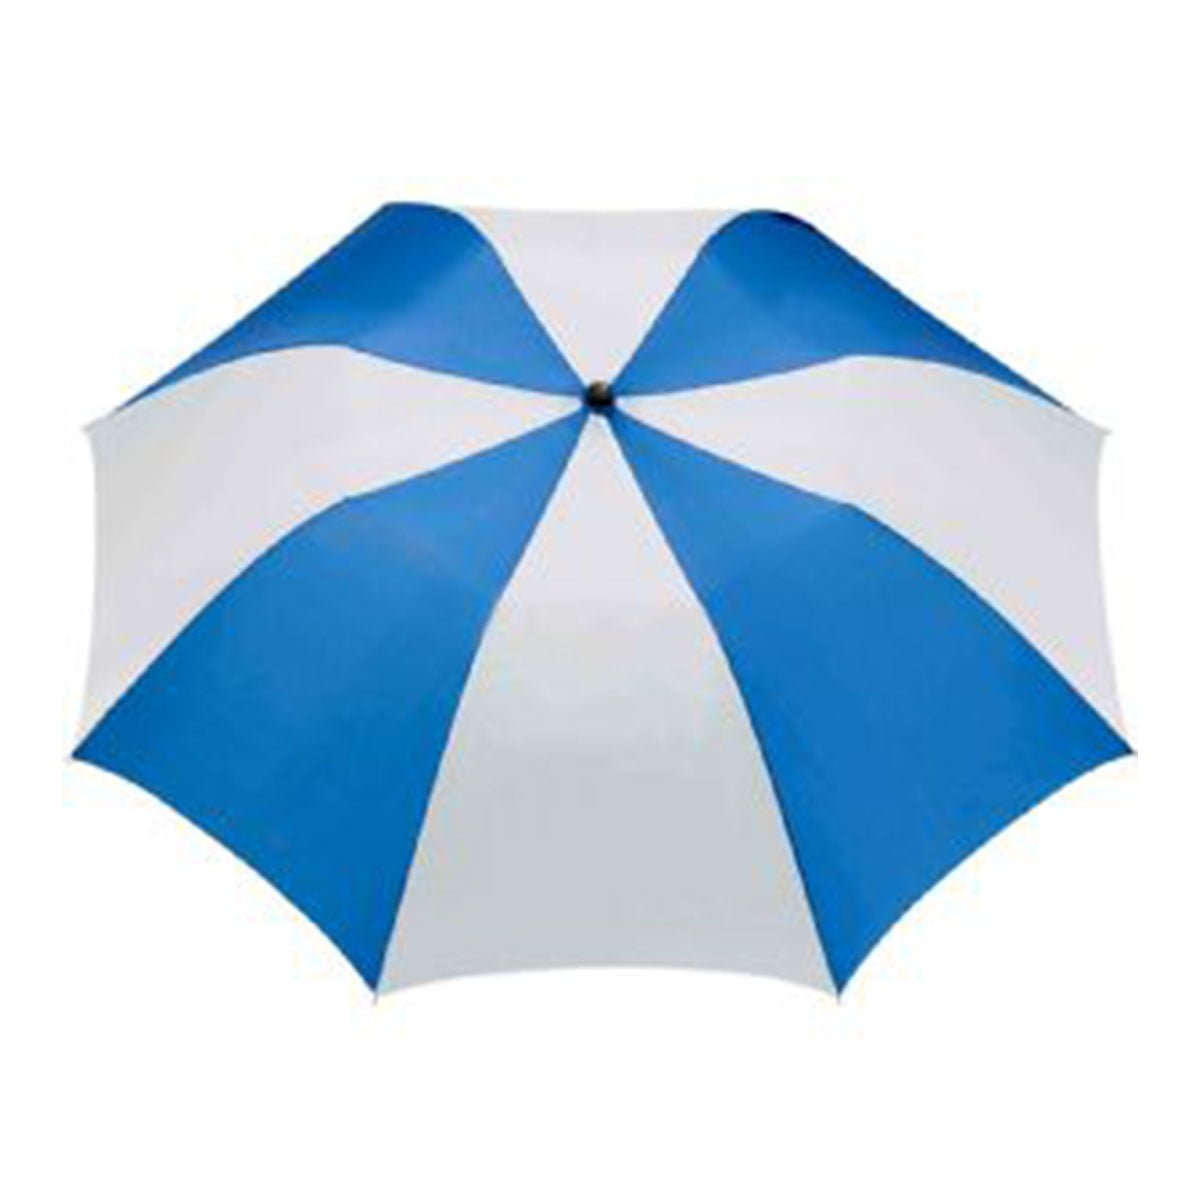 Stromberg Folding Auto Umbrella-Royal Blue & White.